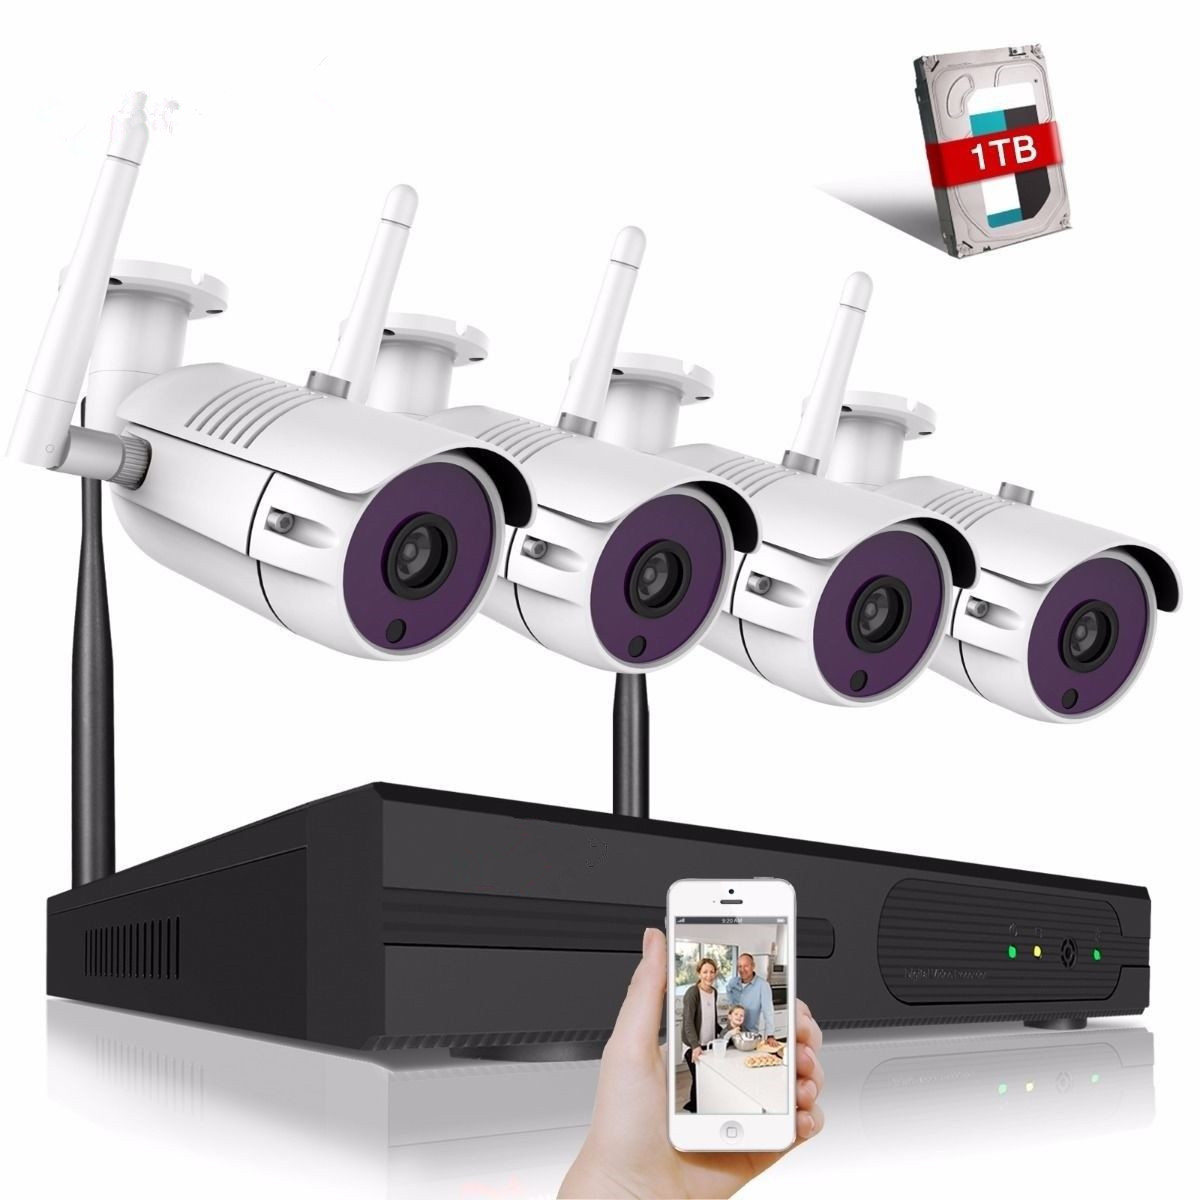 Full HD 1080P 4CH Wireless NVR CCTV Security System 2.0MP IP Camera 1080P Wifi Network outdoor Surveillance kit full hd 1080p 8ch wireless nvr cctv security system 2 0mp ip camera 1080p wifi network outdoor surveillance kit